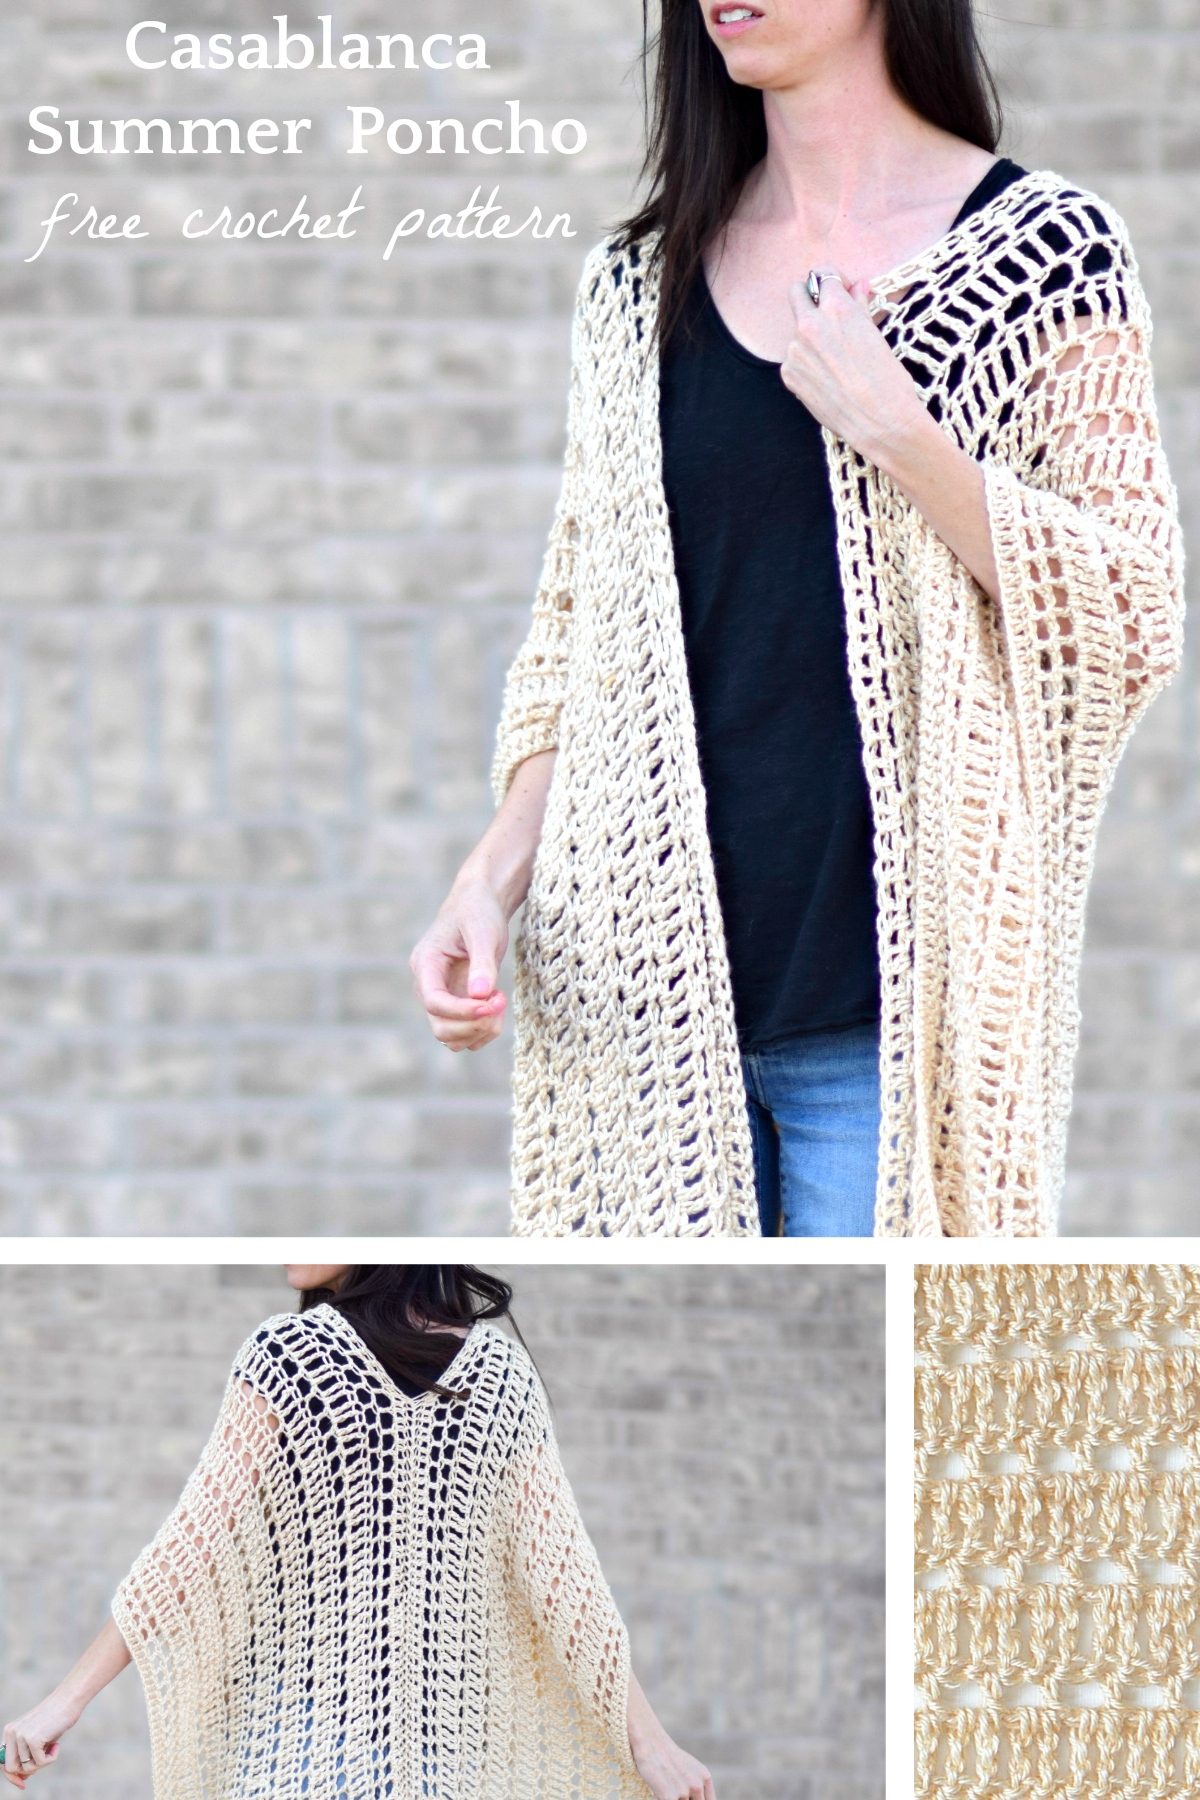 Free Knitting Patterns Poncho Casablanca Summer Poncho Crochet Pattern Mama In A Stitch